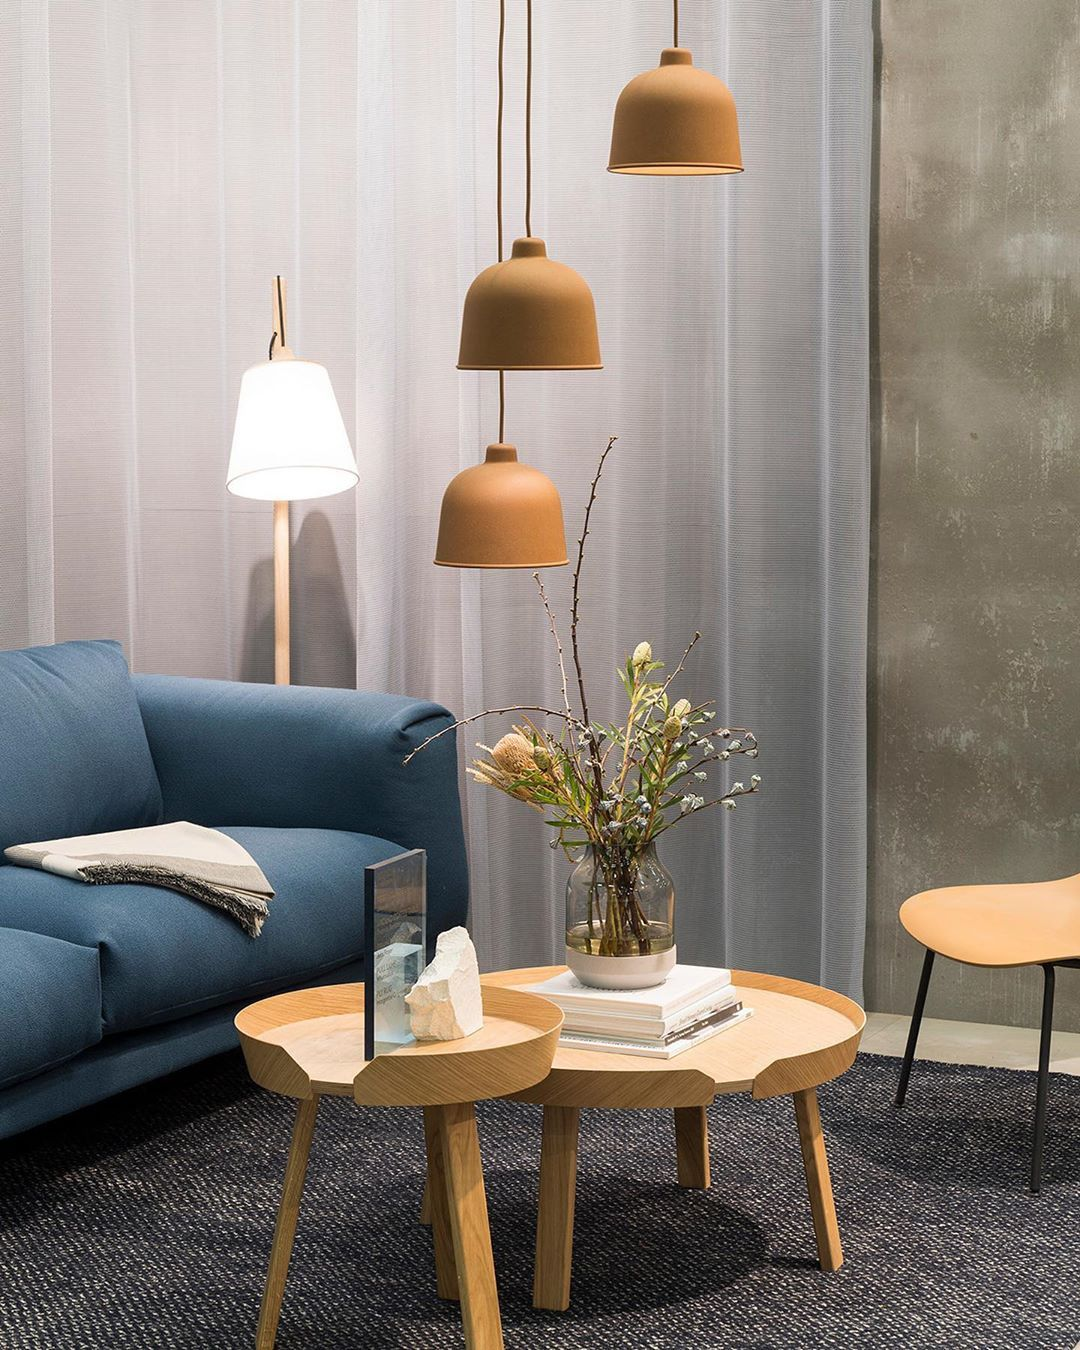 Ambit Pendant Lamp In Dusty Green 25 Cm Diameter Variant The Ambit Pendant Lamp Also Comes In A Smaller Green Pendant Light Pendant Lamp Pendant Light Design